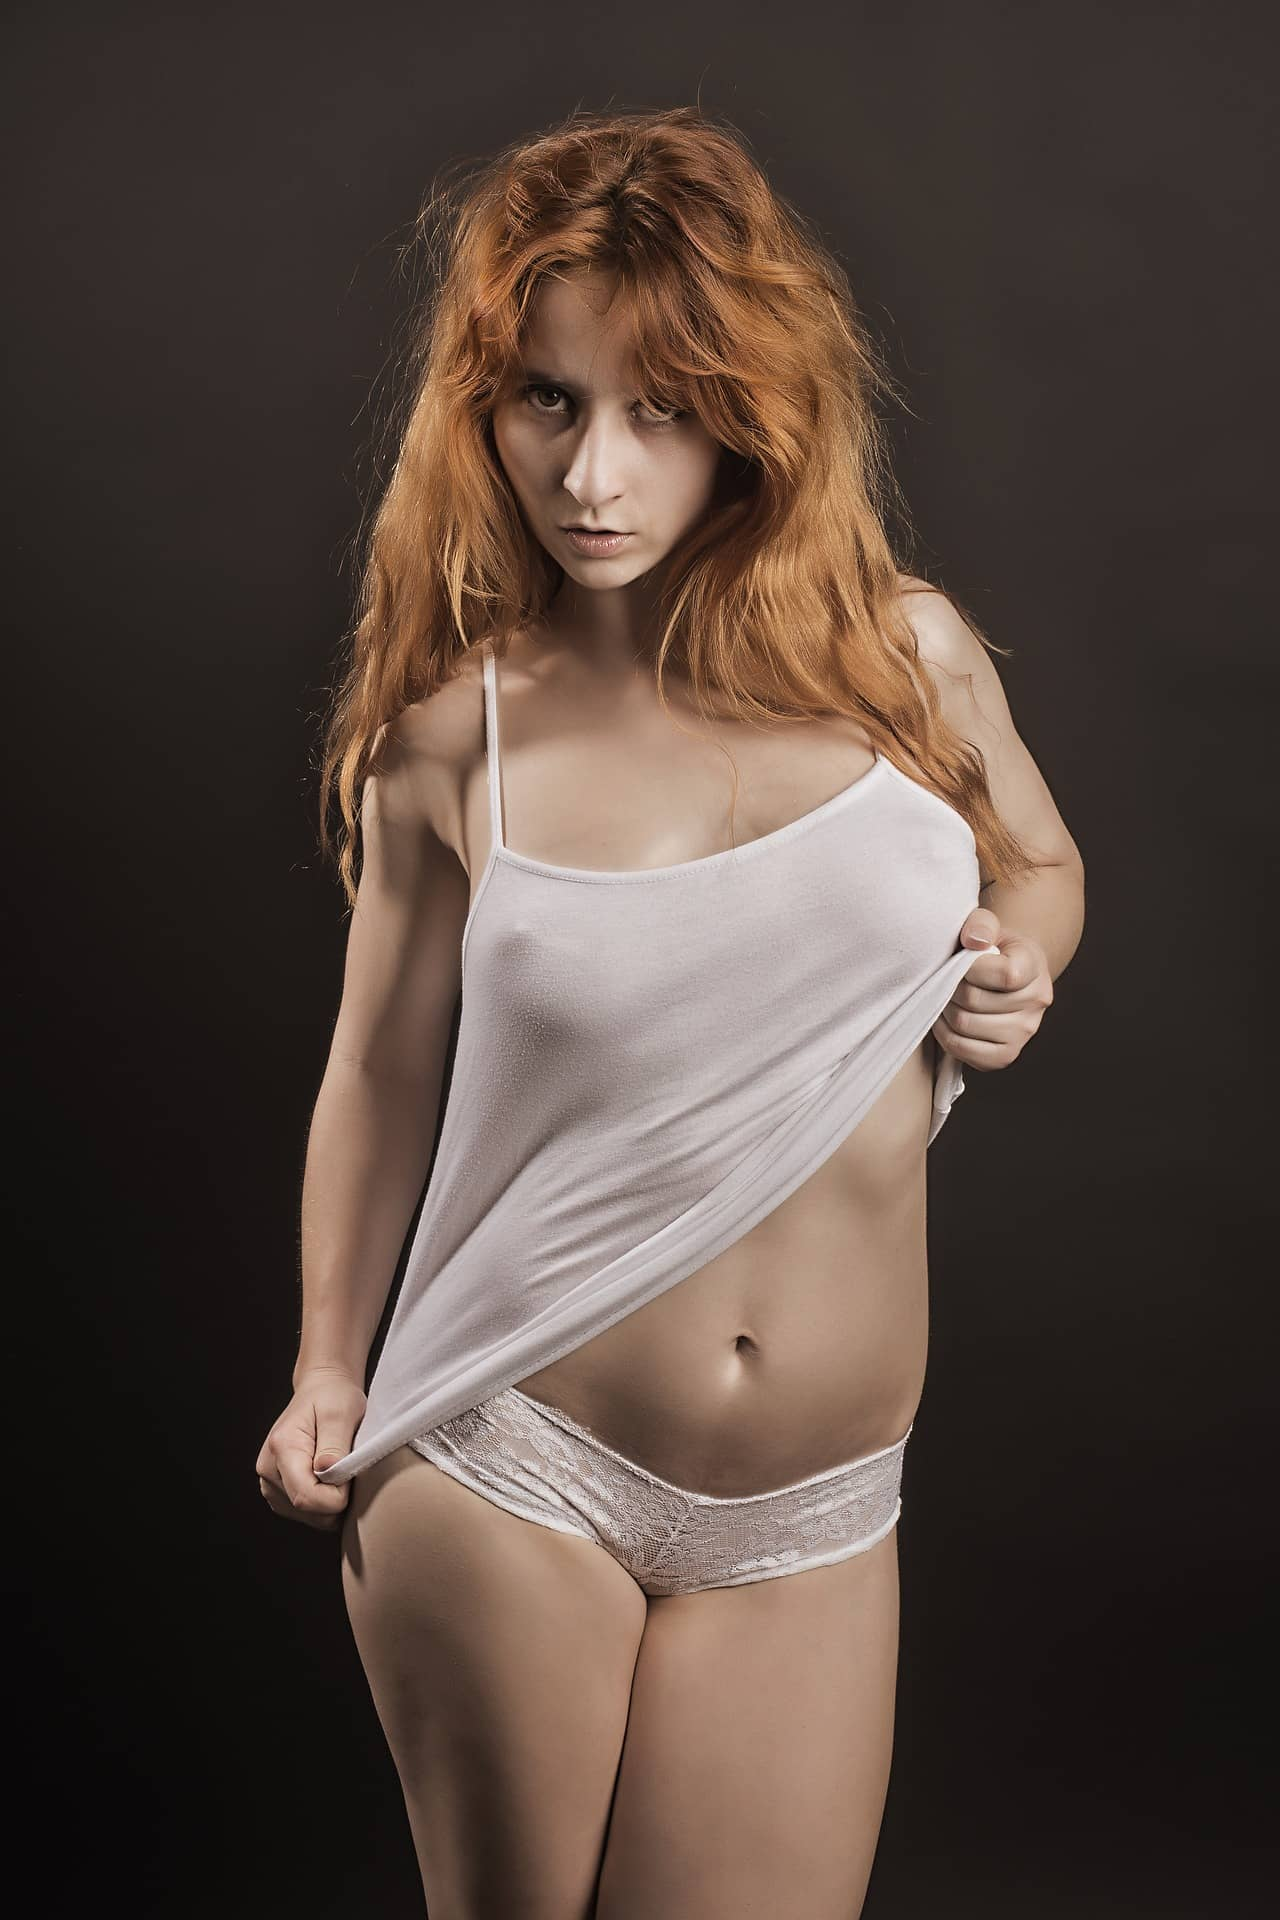 Beautiful redhead woman posing in an artistic photoshoot with her arm up wearing white transparent clothes and lace panties showing belly button